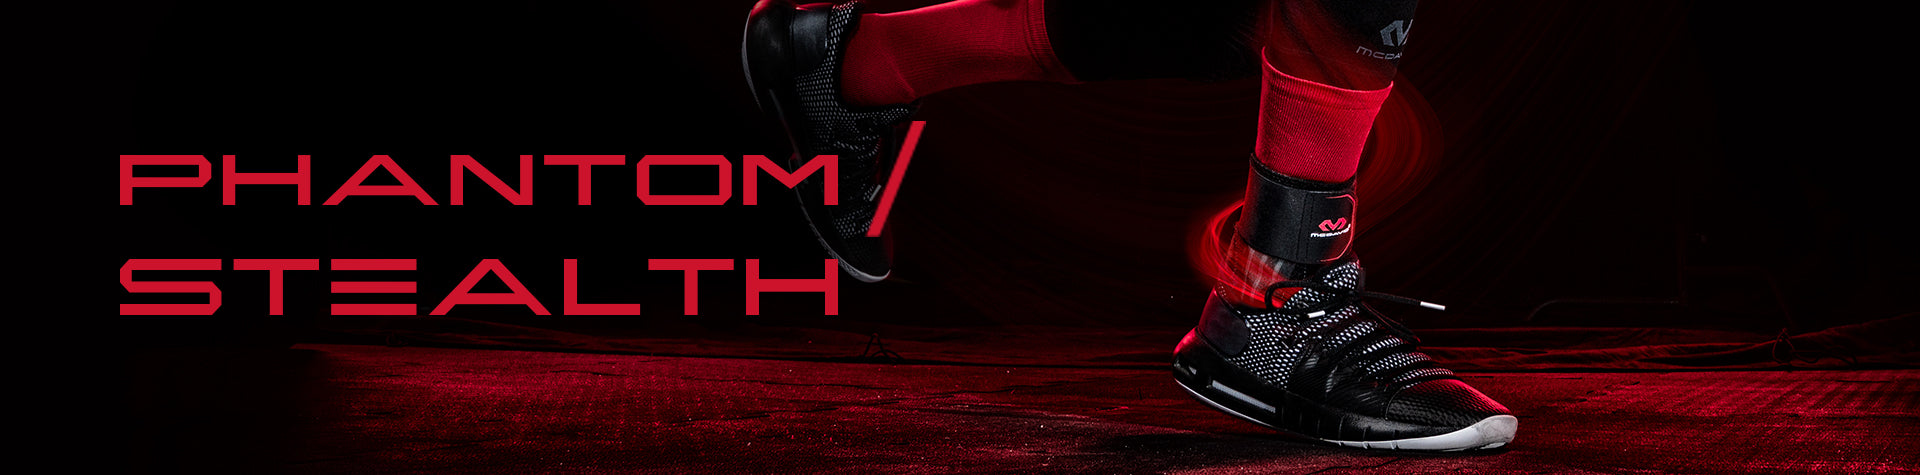 Phantom X Stealth Ankle Brace Collection